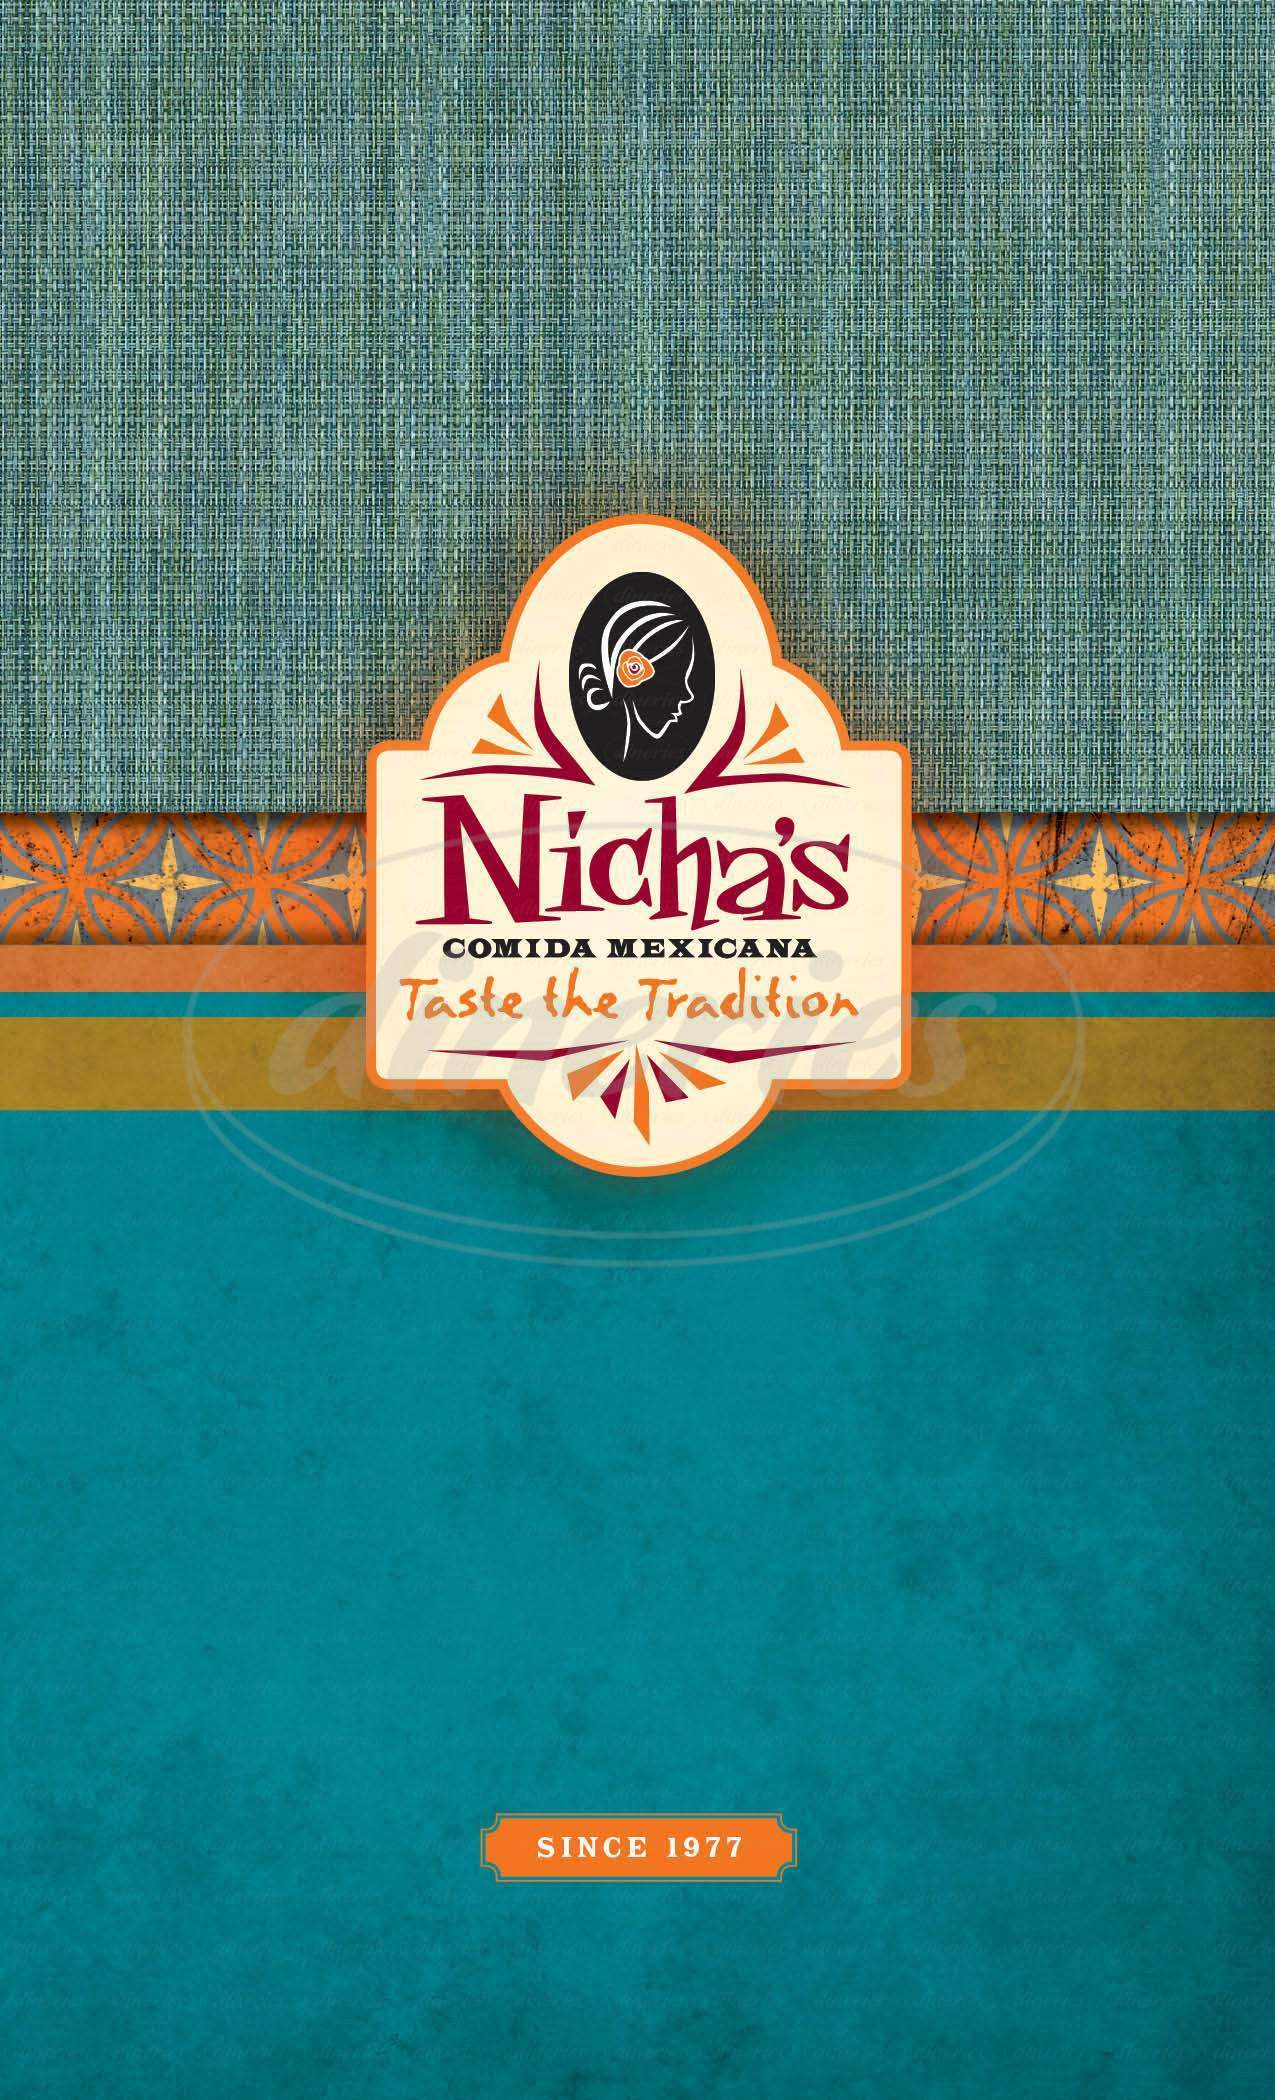 menu for Nicha's Comida Mexicana